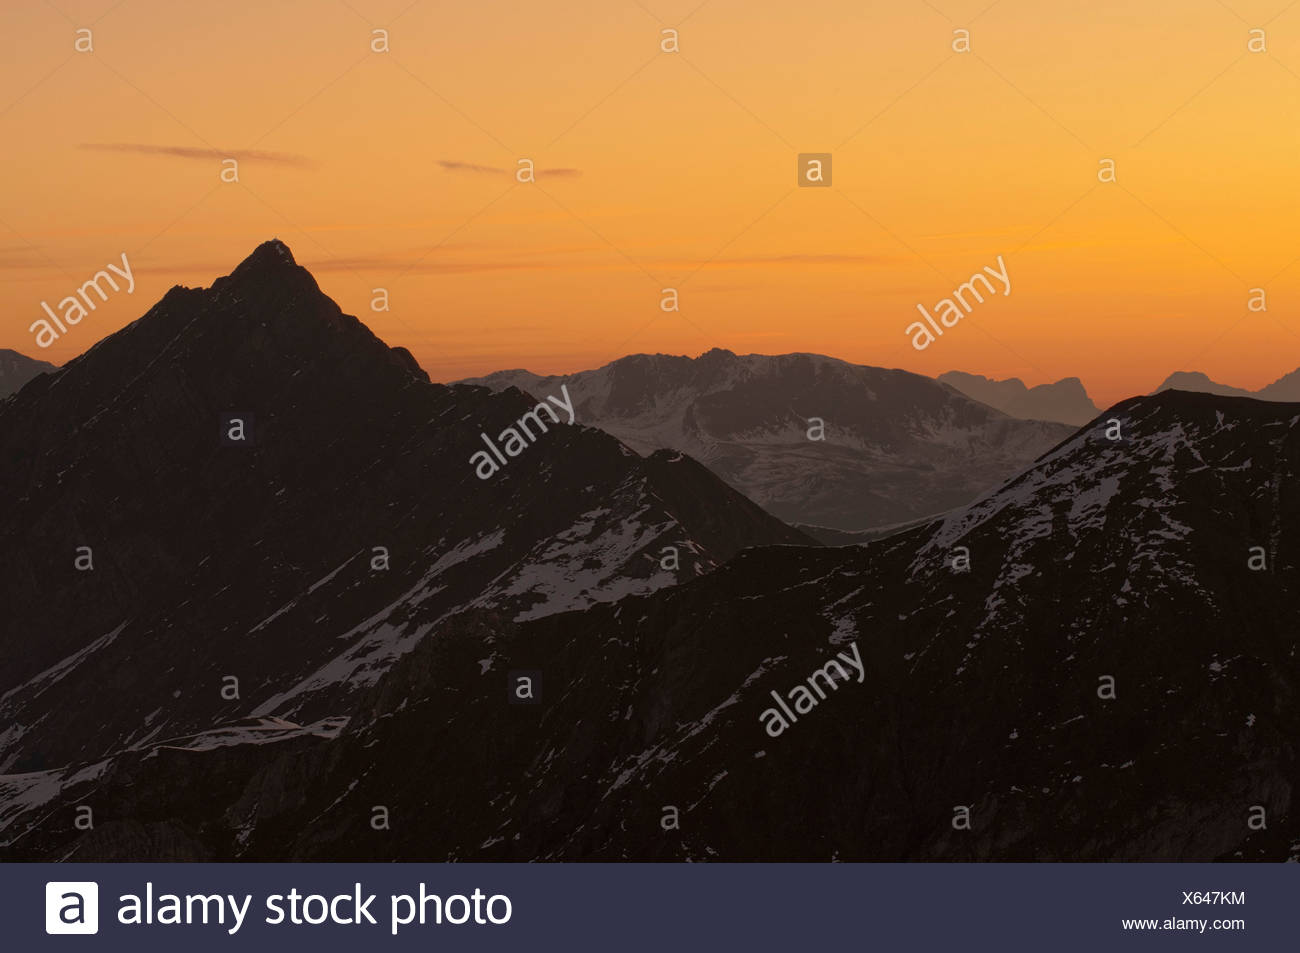 Hornspitze Mountain on the right, Tux Alps at the rear, seen from Spannagel Hut, Tyrol, Austria, Europe - Stock Image